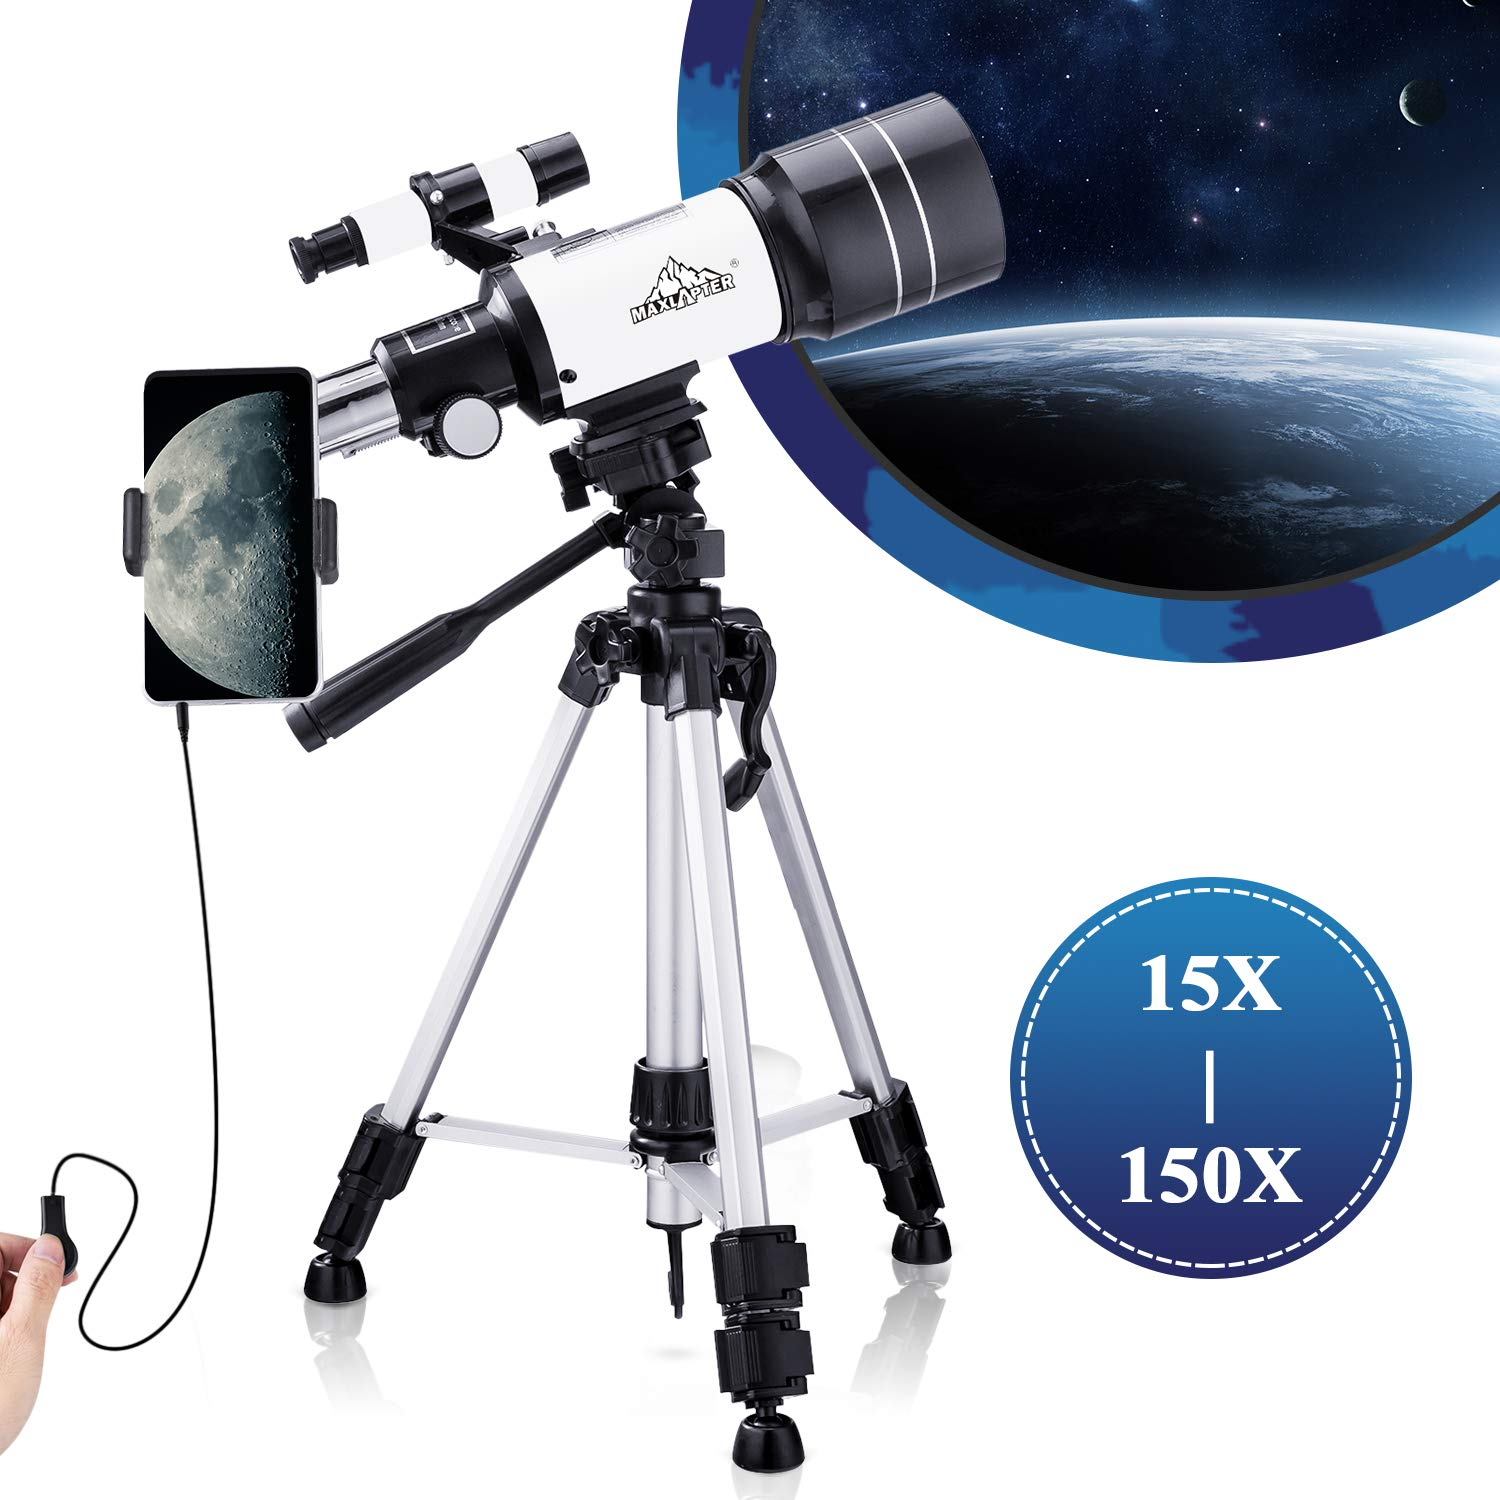 Telescope for Kids Beginners,150X Astronomy Monocular Telescopes 300/70mm with Phone Adapter, Camera Wire Shutter, Moon Filter and Backpack